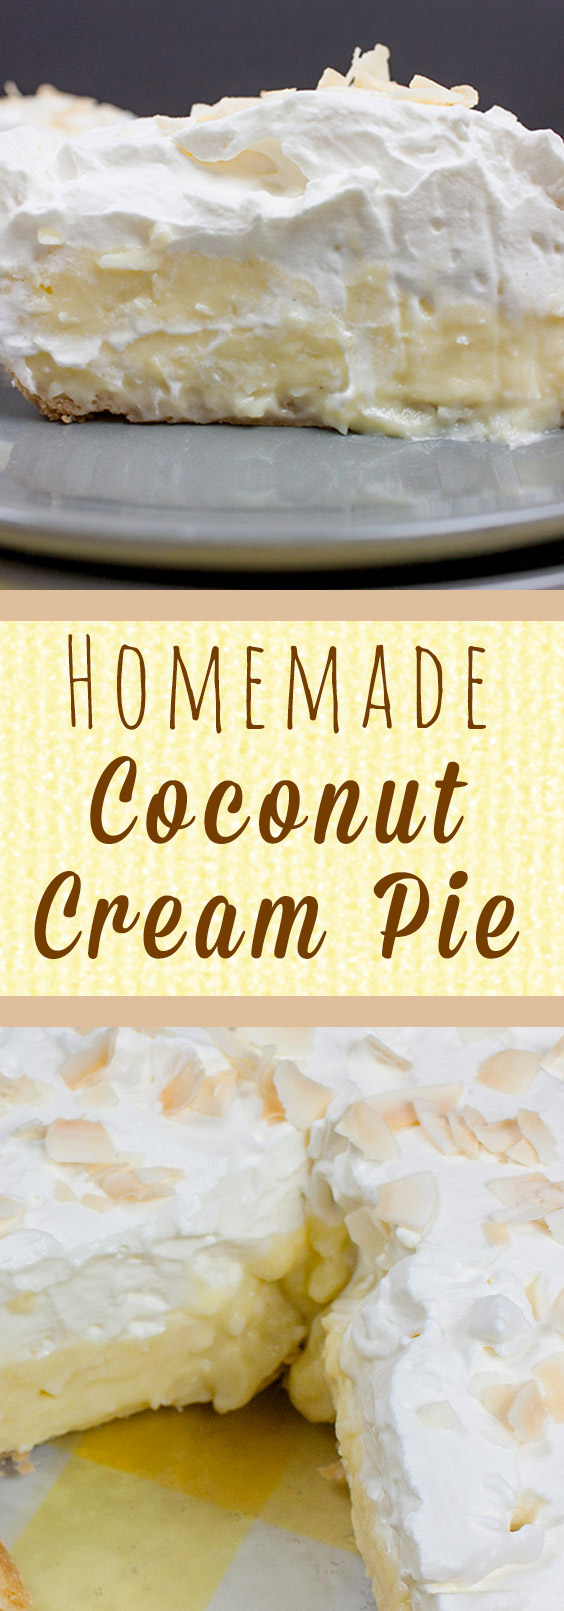 Best Homemade Coconut Cream Pie - Super flaky, crunchy crust loaded with creamy, velvety coconut custard and topped with homemade whipped cream. Sublime!